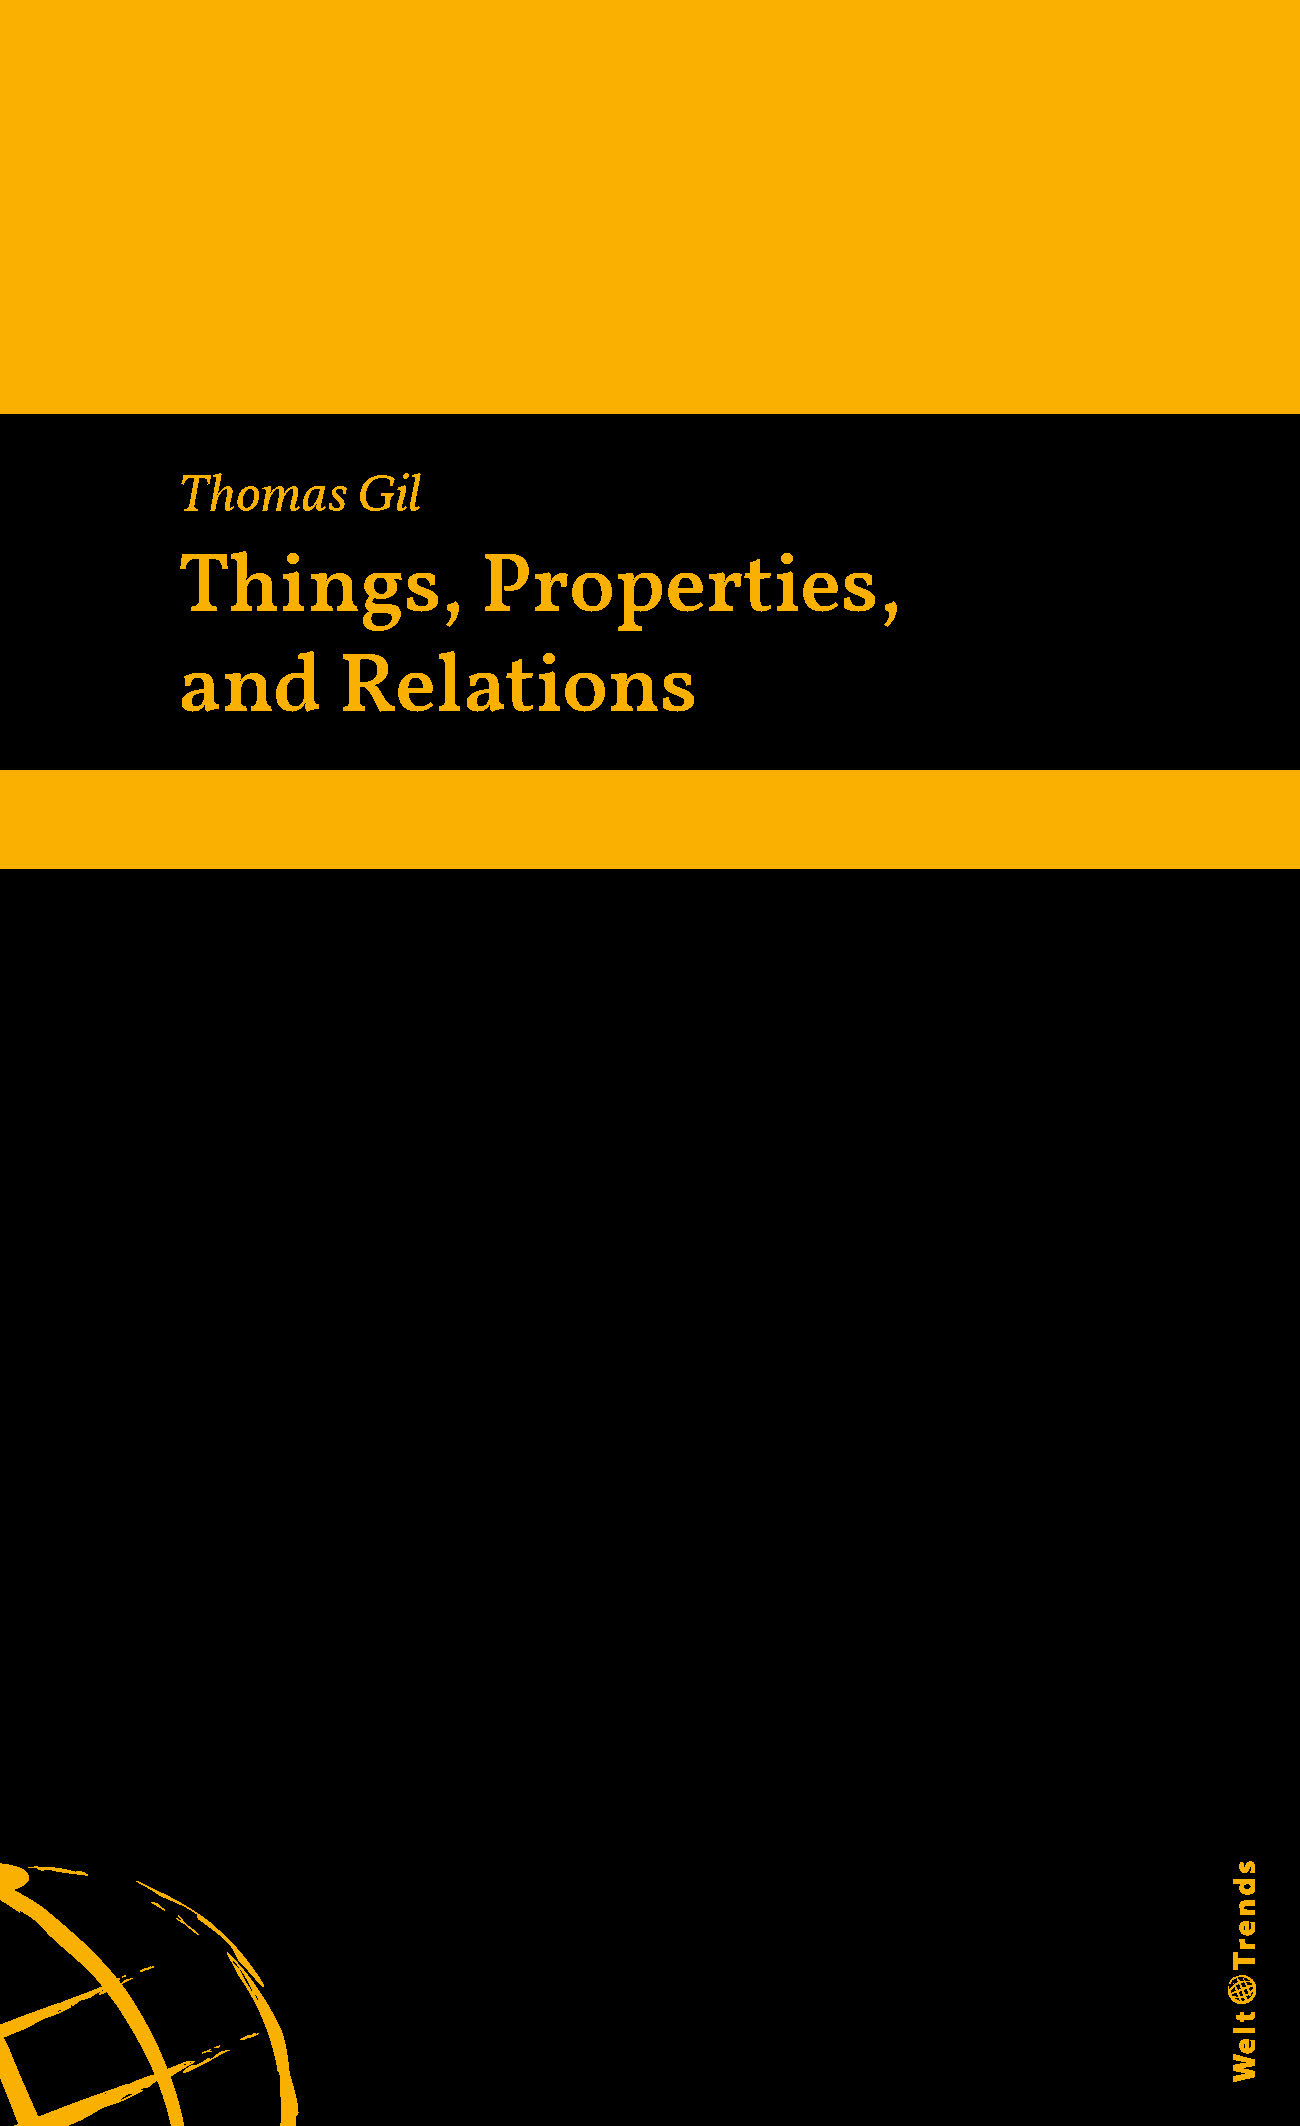 Things, Properties, and Relations